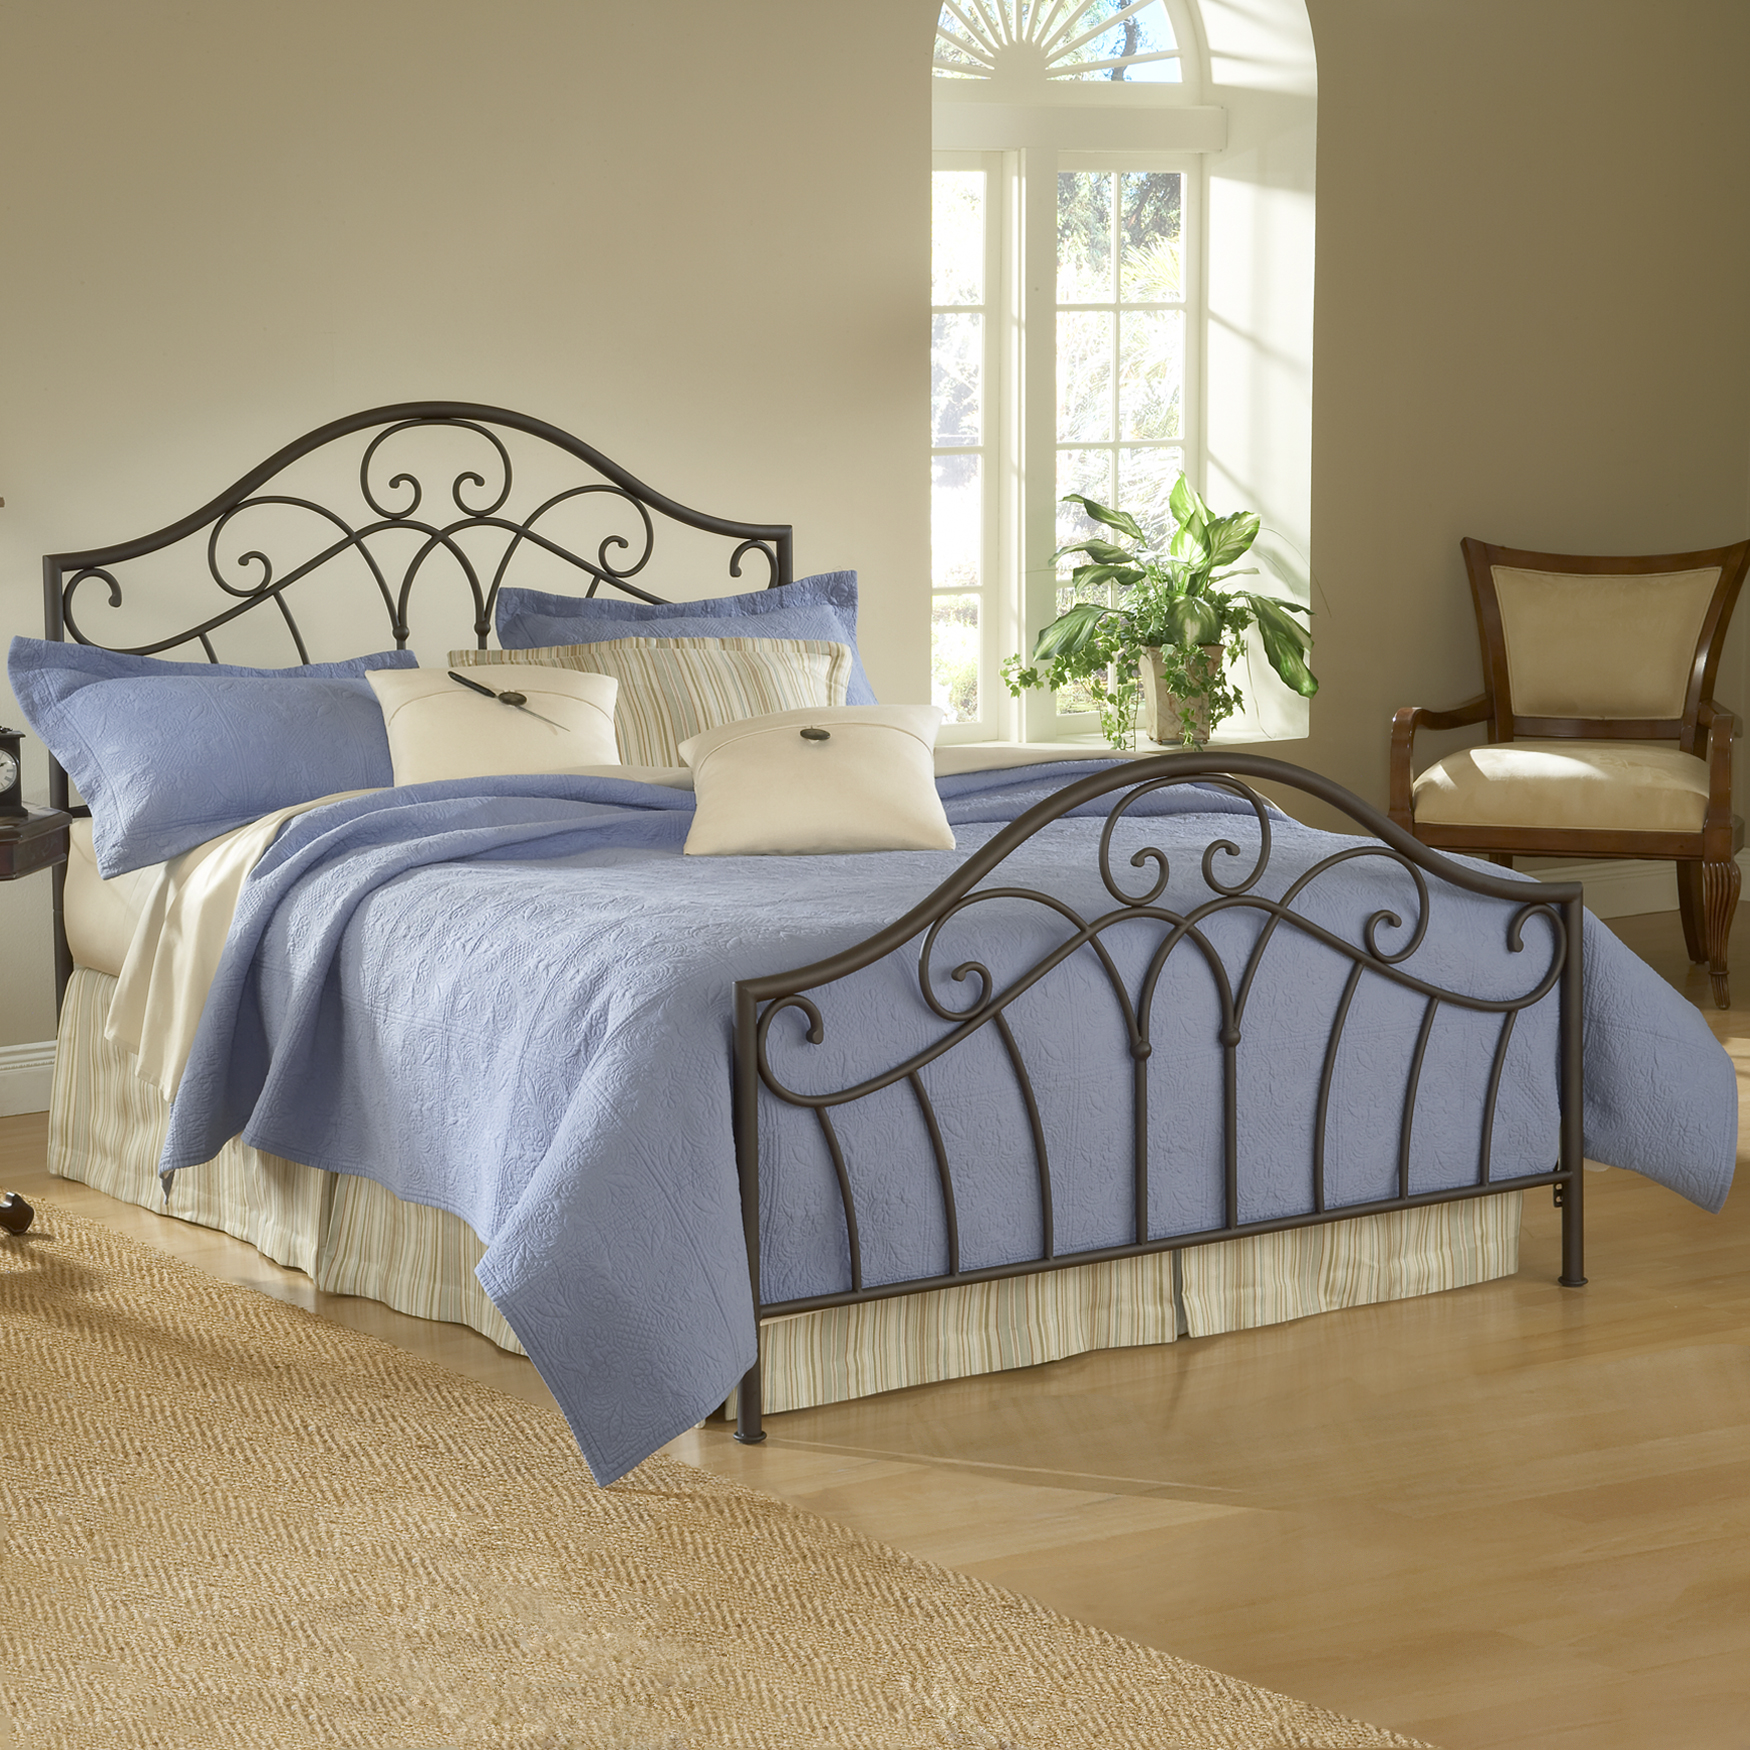 Queen Bed with Bed Frame, 83½'Lx61'Wx54'H, METALLIC BROWN